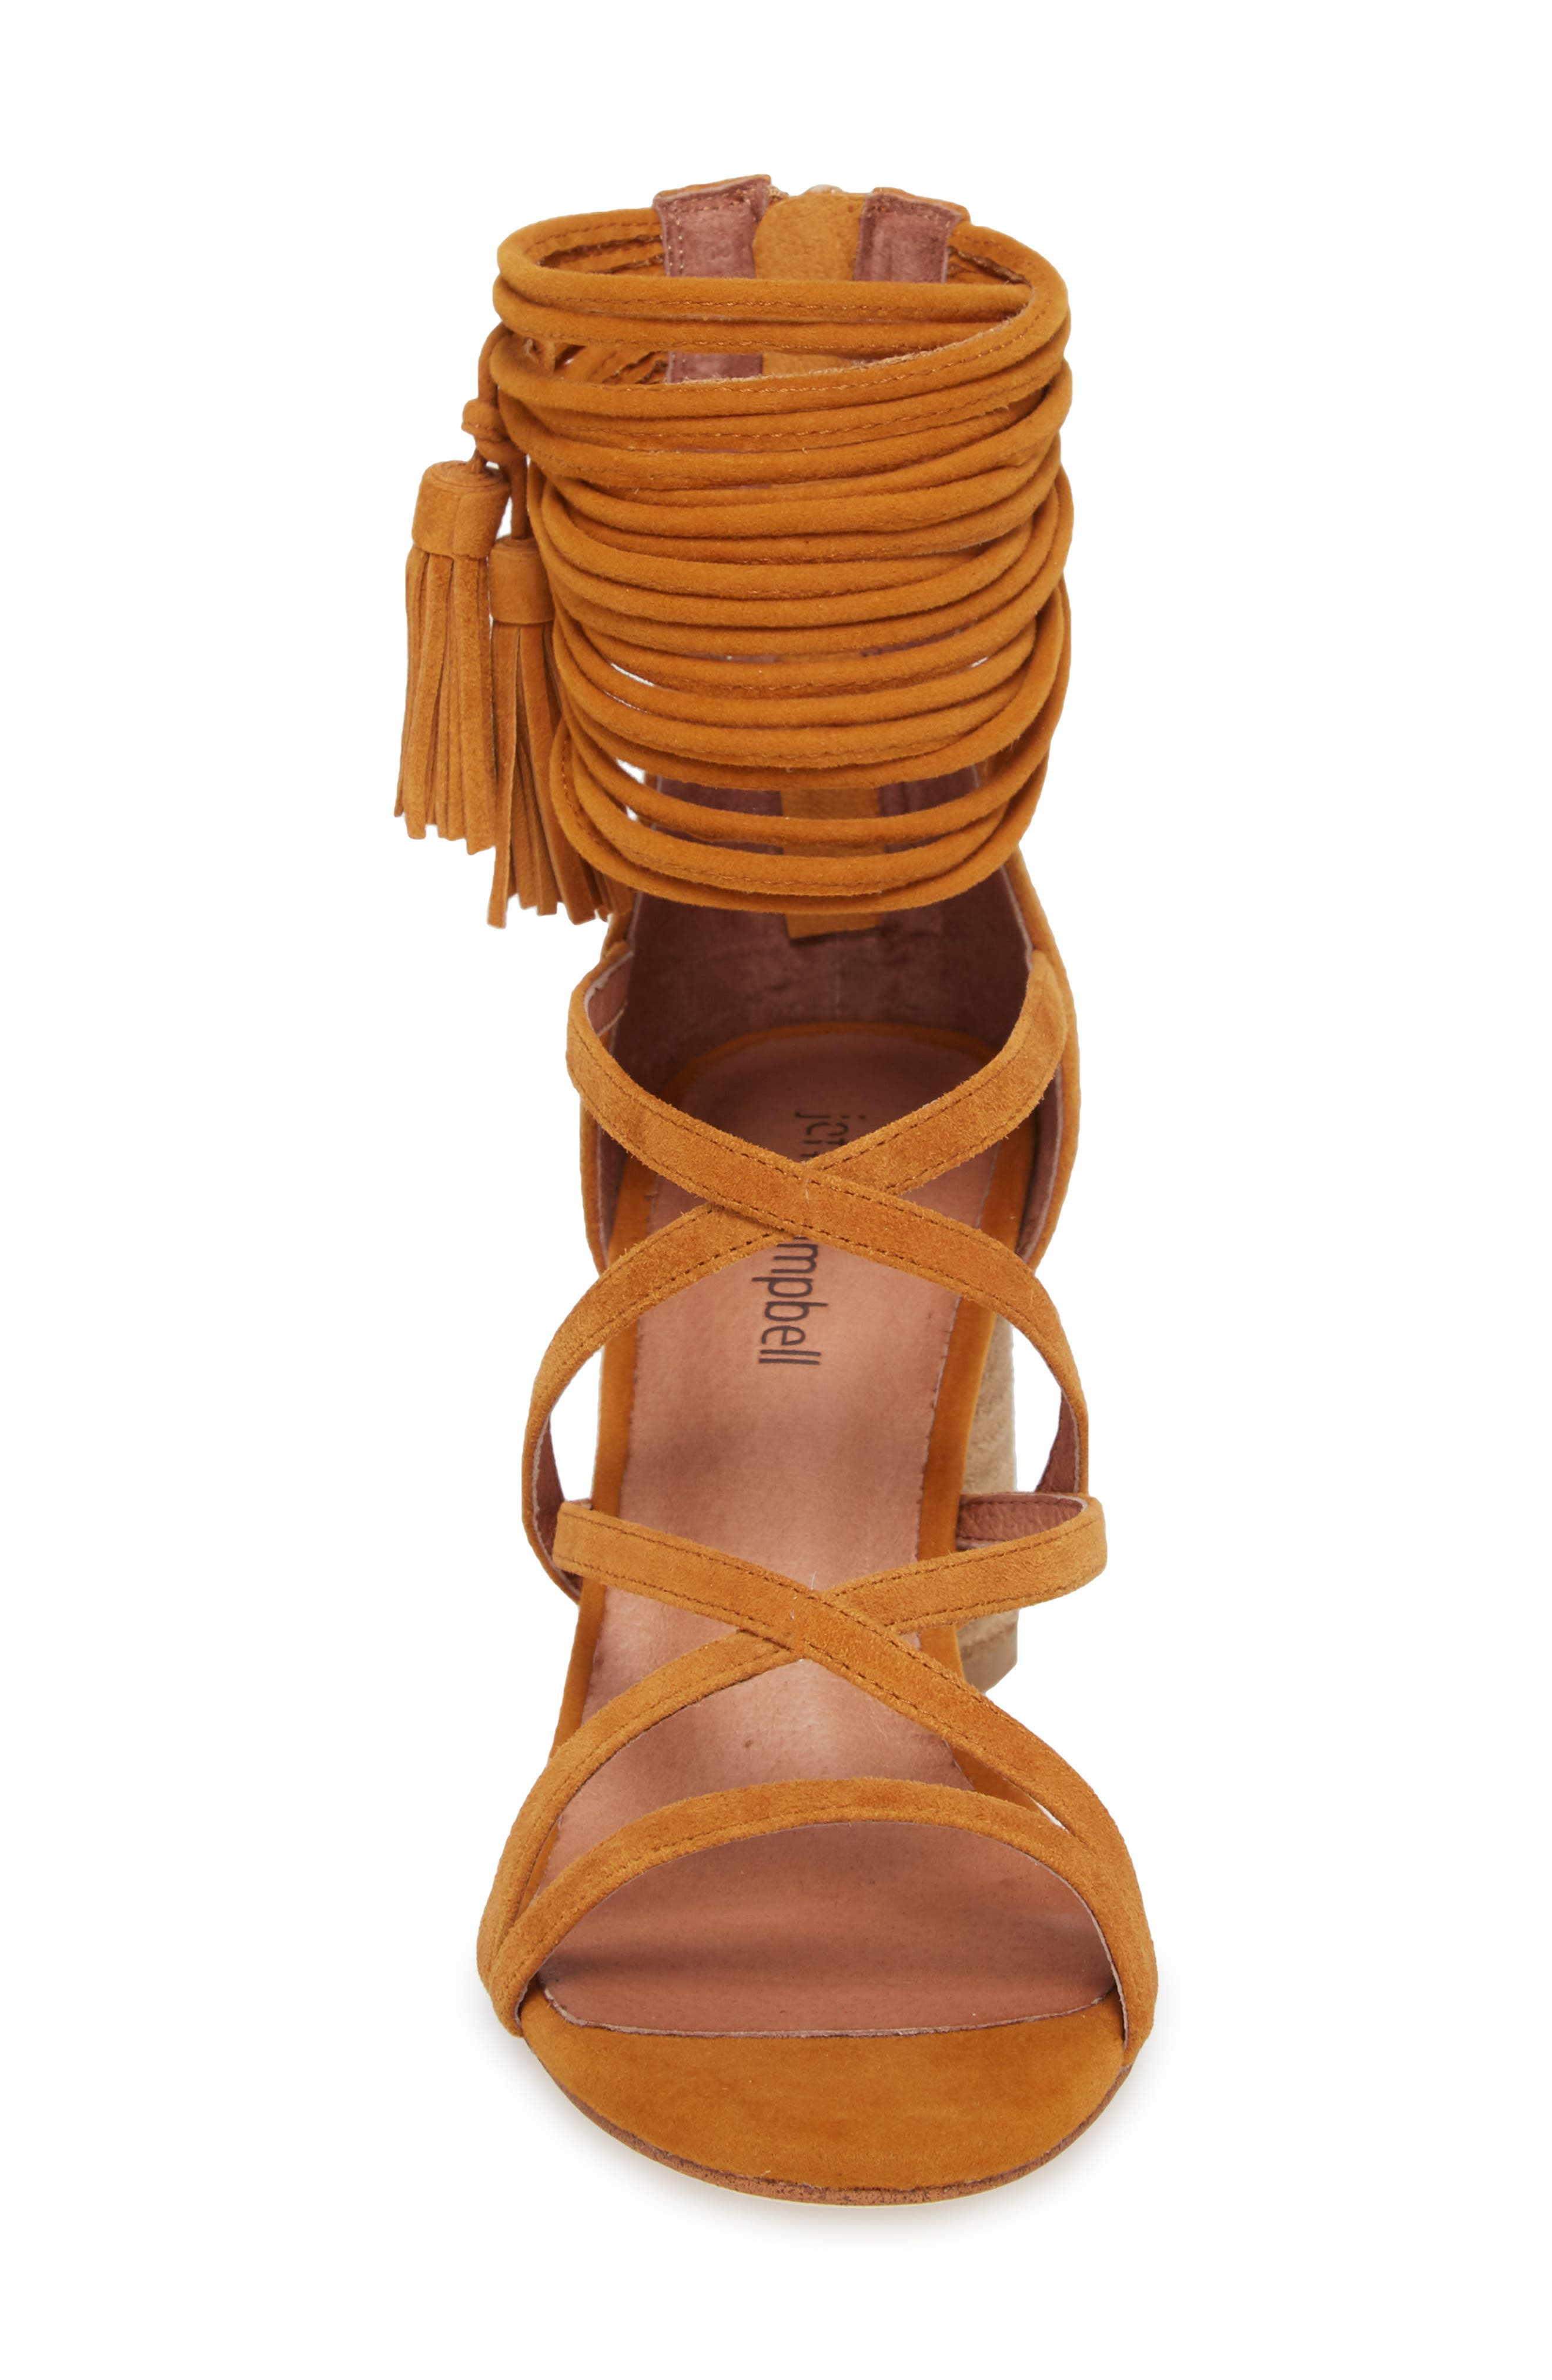 'Despina' Strappy Sandal,                             Alternate thumbnail 4, color,                             Mustard Suede